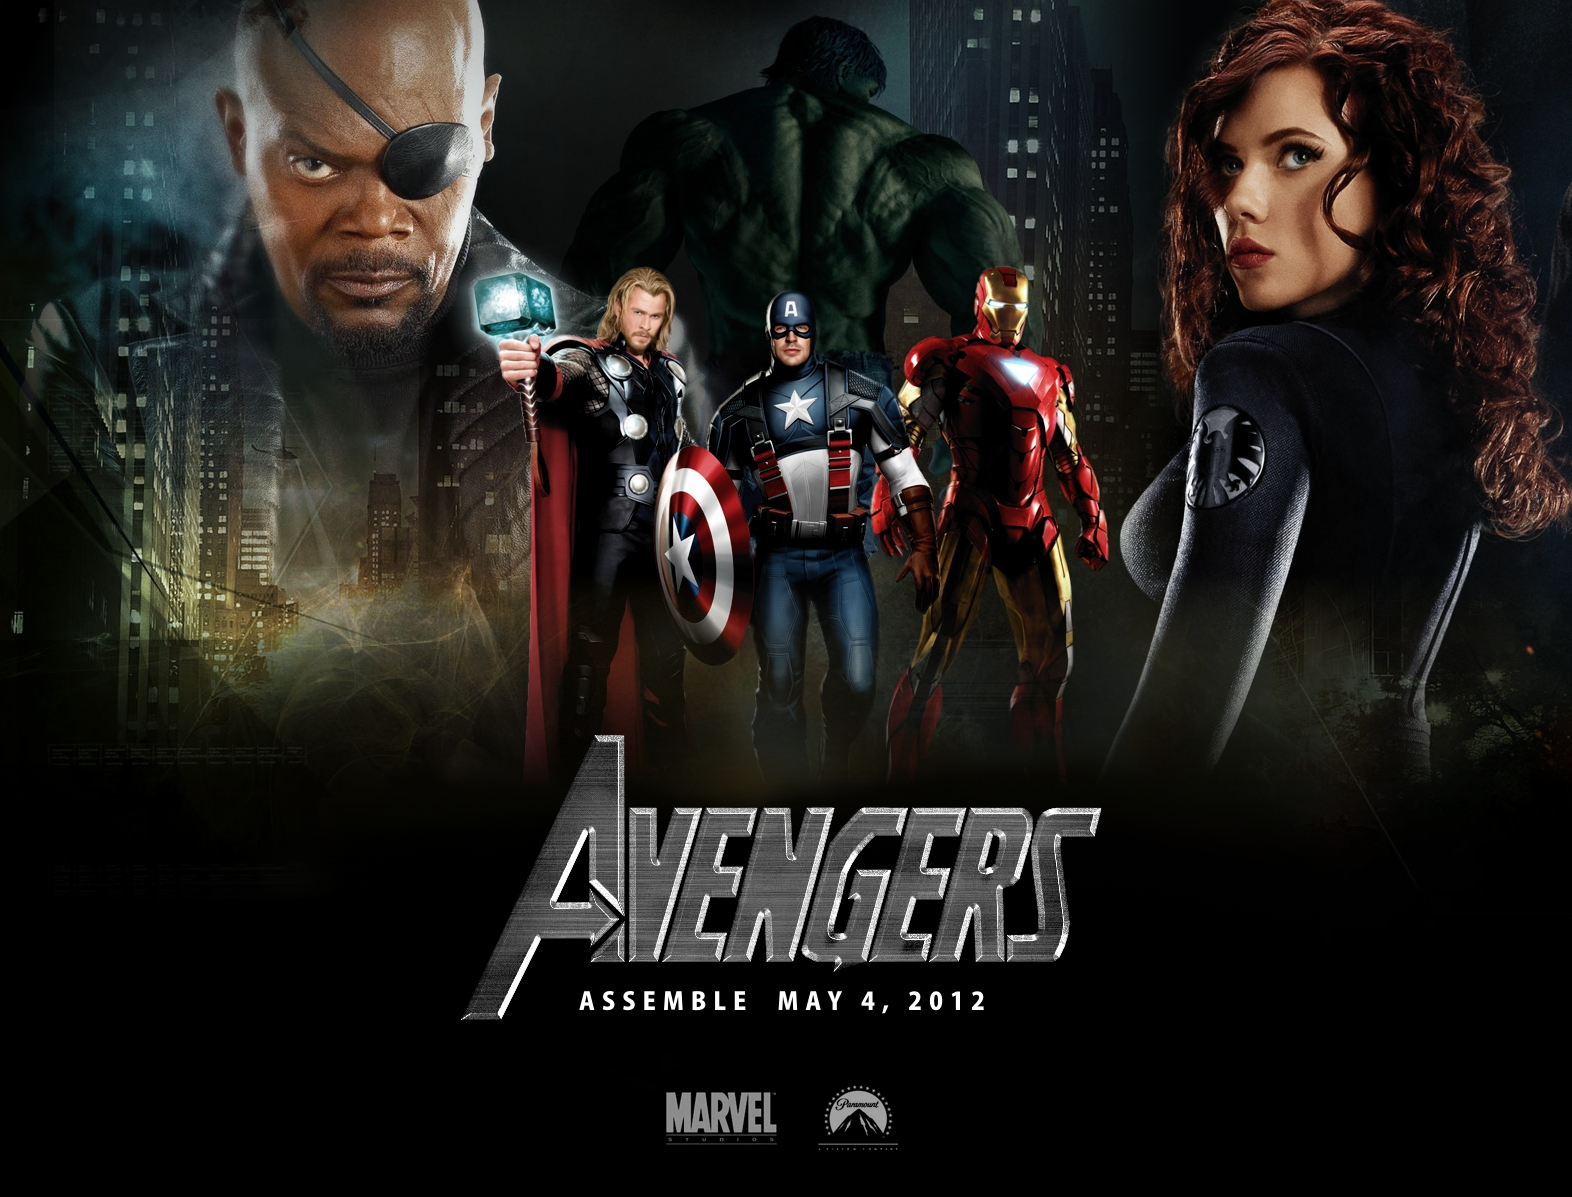 The Avengers Movie: Beautiful HD Wallpapers: The Avengers 2012 Movie Wallpaper #2